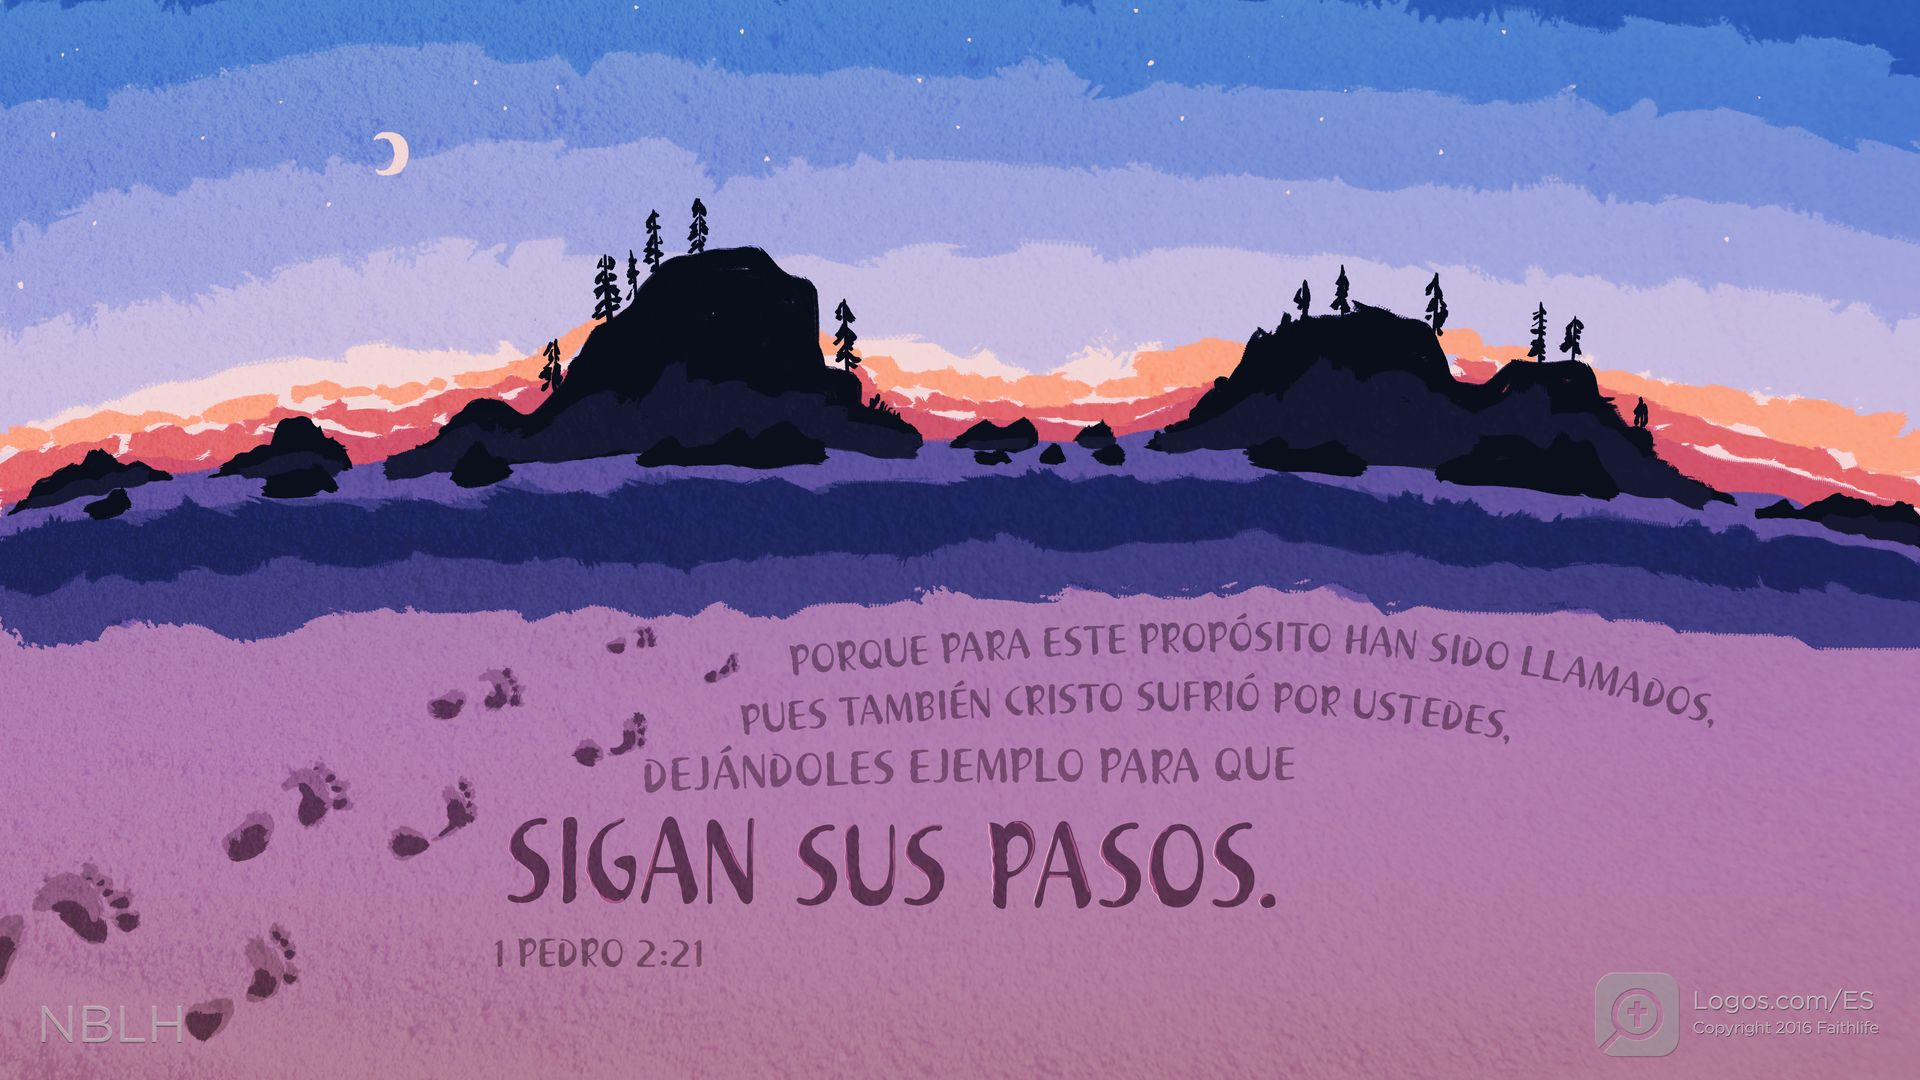 Estoy leyendo 1 Pedro 2.21 (With images) 1 peter, Bible